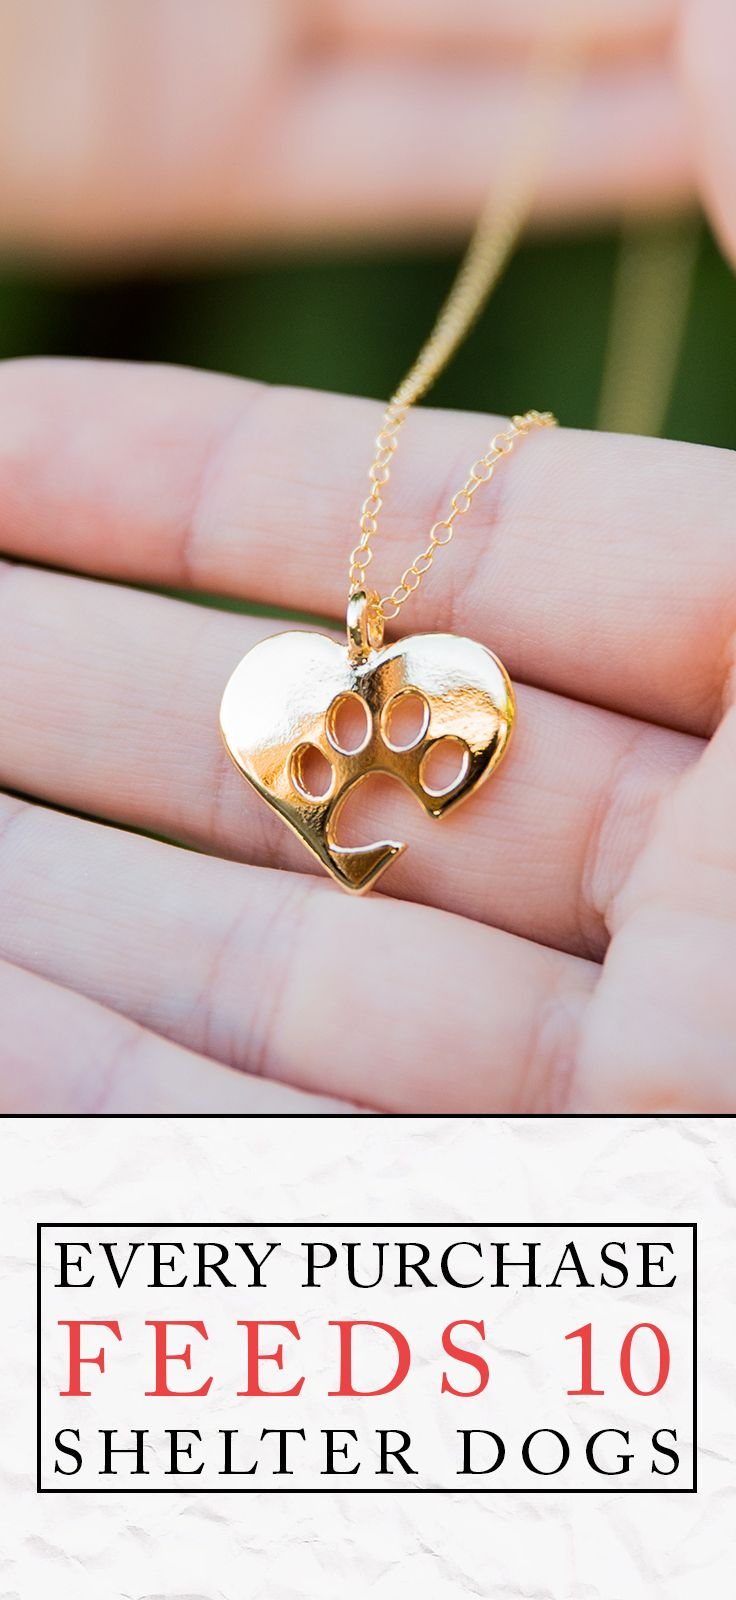 Would you wear this? Comment below! ▬▬►Every purchase feeds 7 shelter dogs! Paw necklace